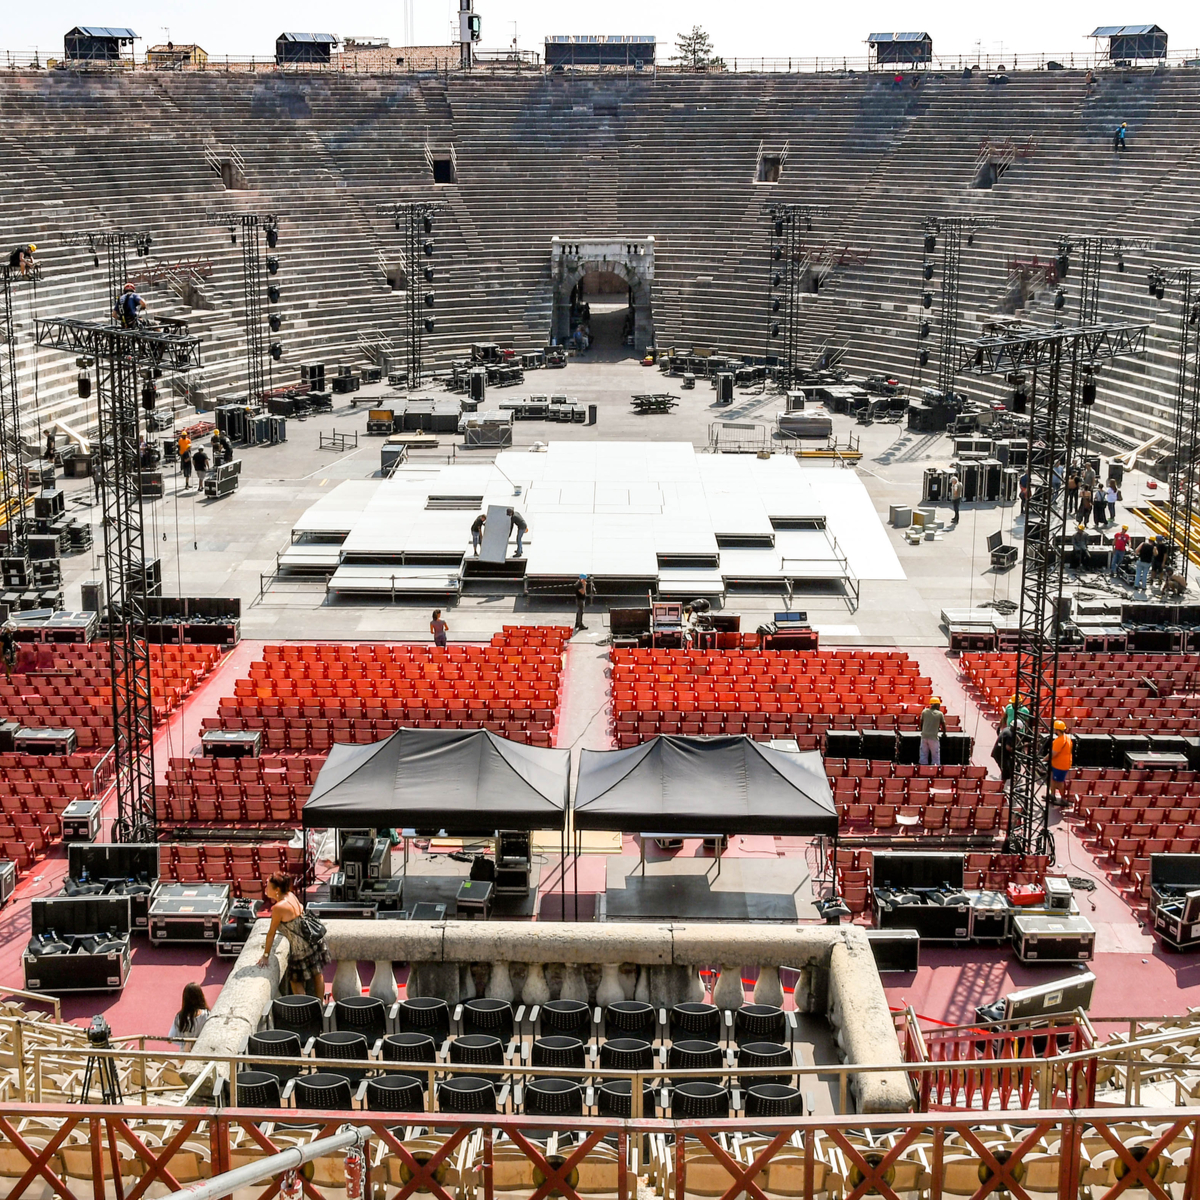 The Arena in Verona, Italy.